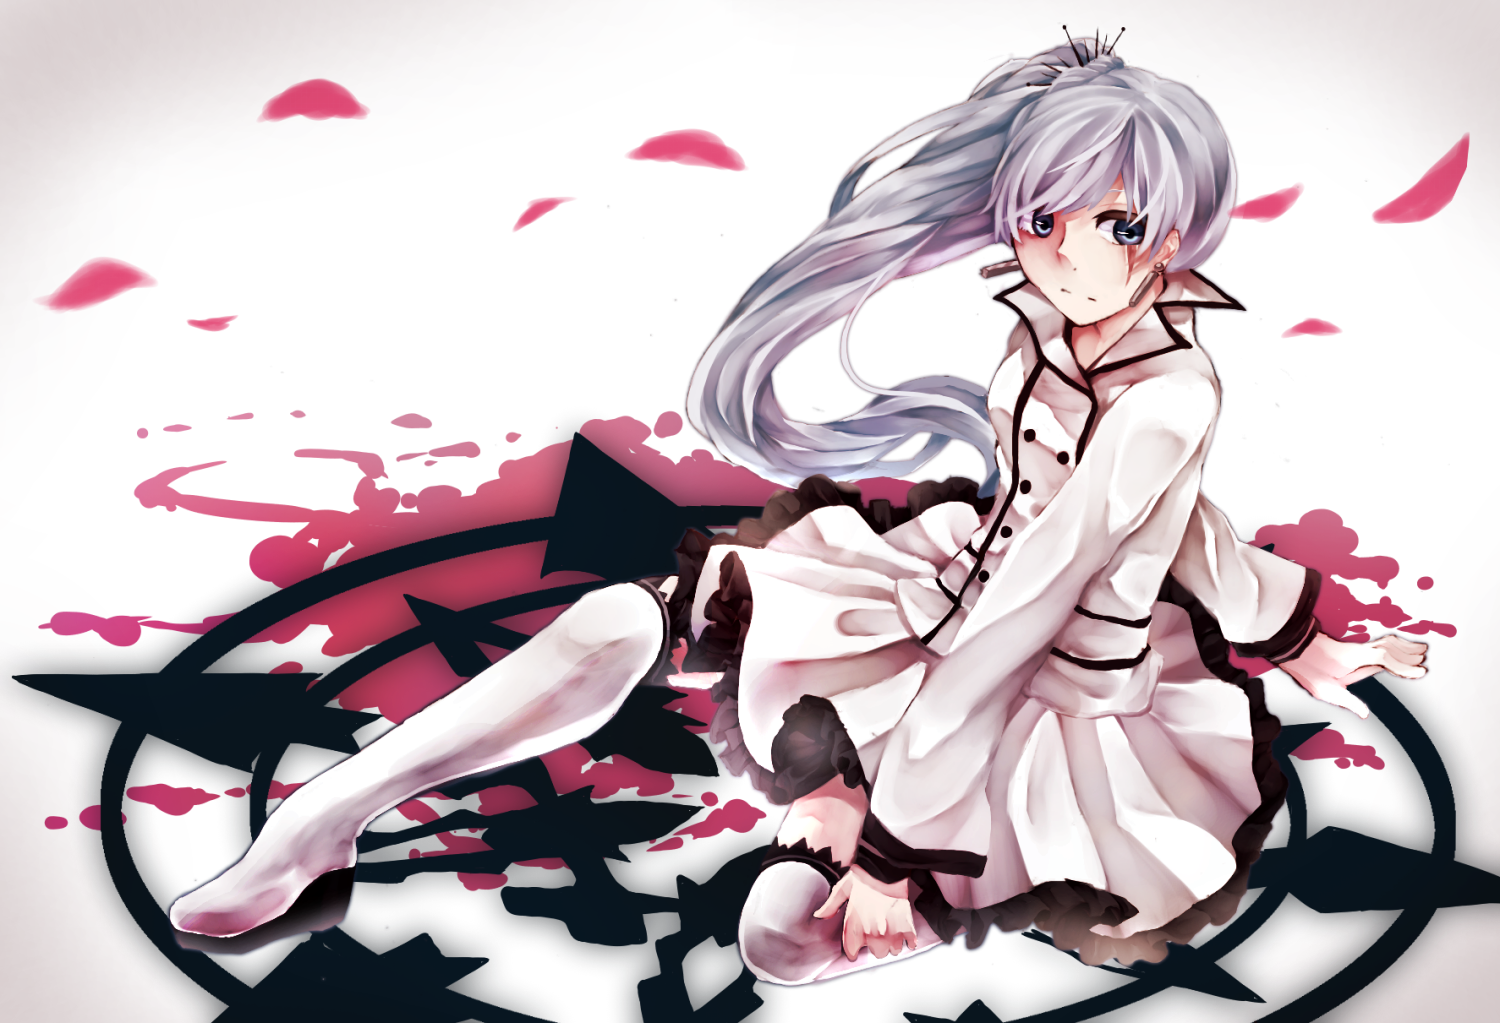 42 Rwby Hd Wallpapers Backgrounds Wallpaper Abyss Rwby Rwby